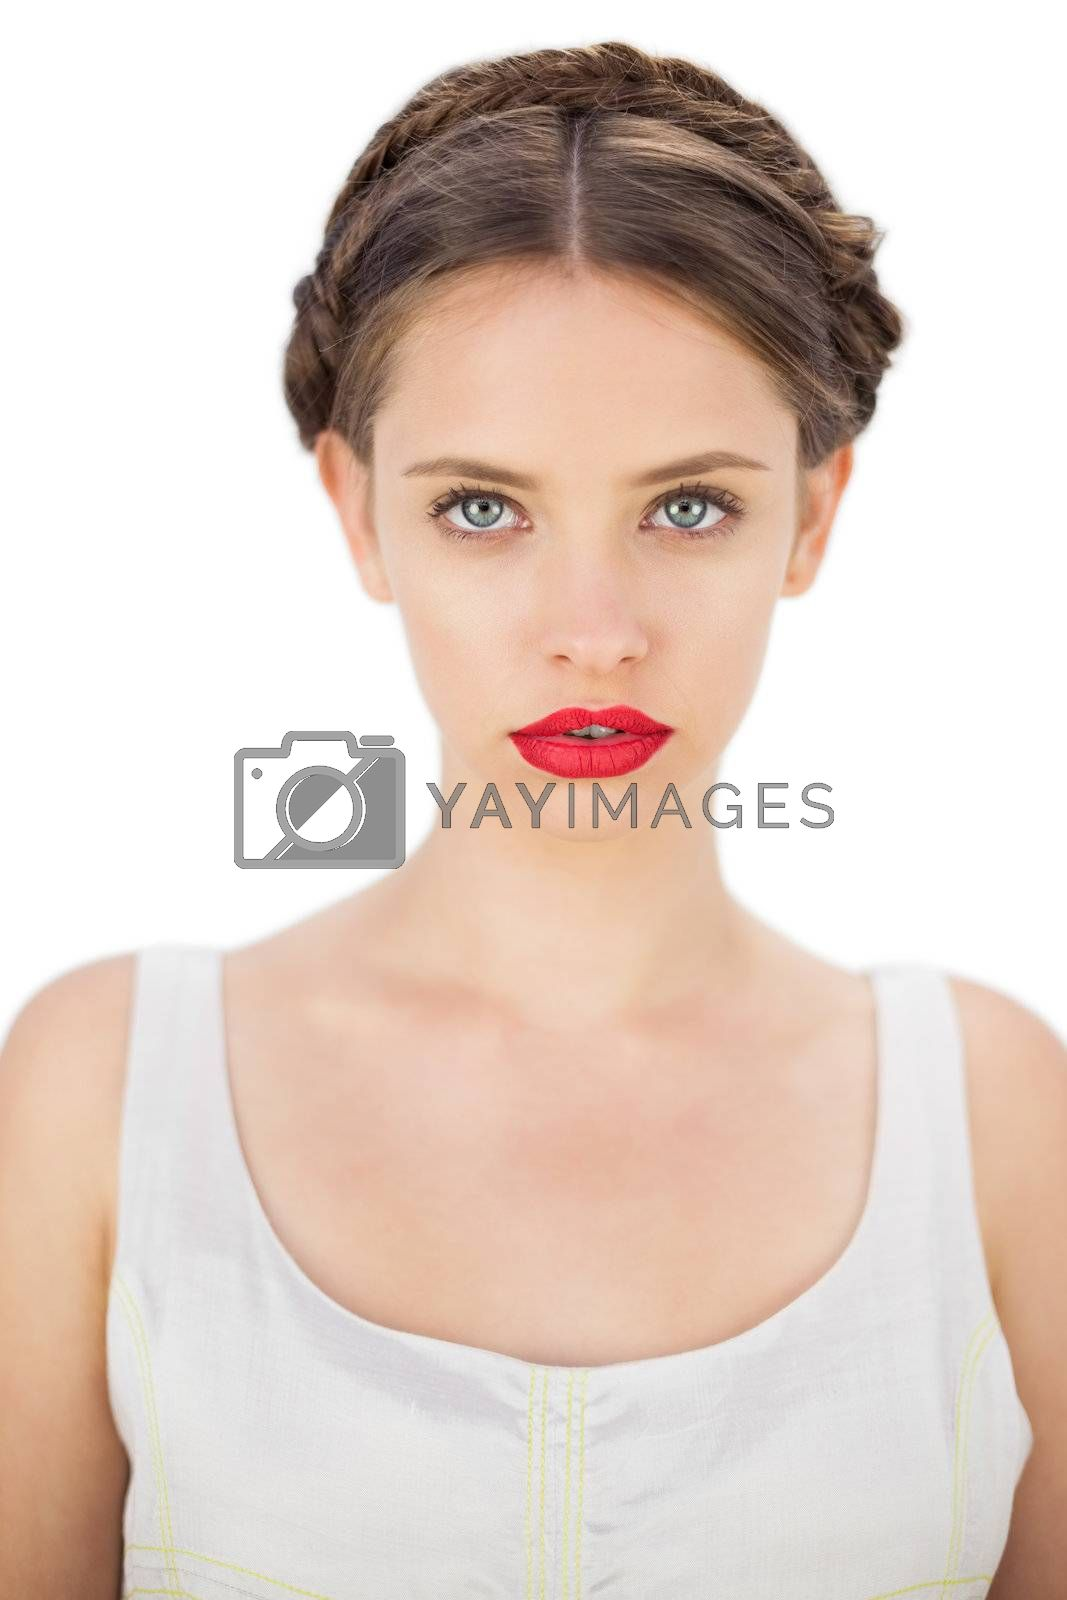 Glamour model in white dress posing looking at camera by Wavebreakmedia